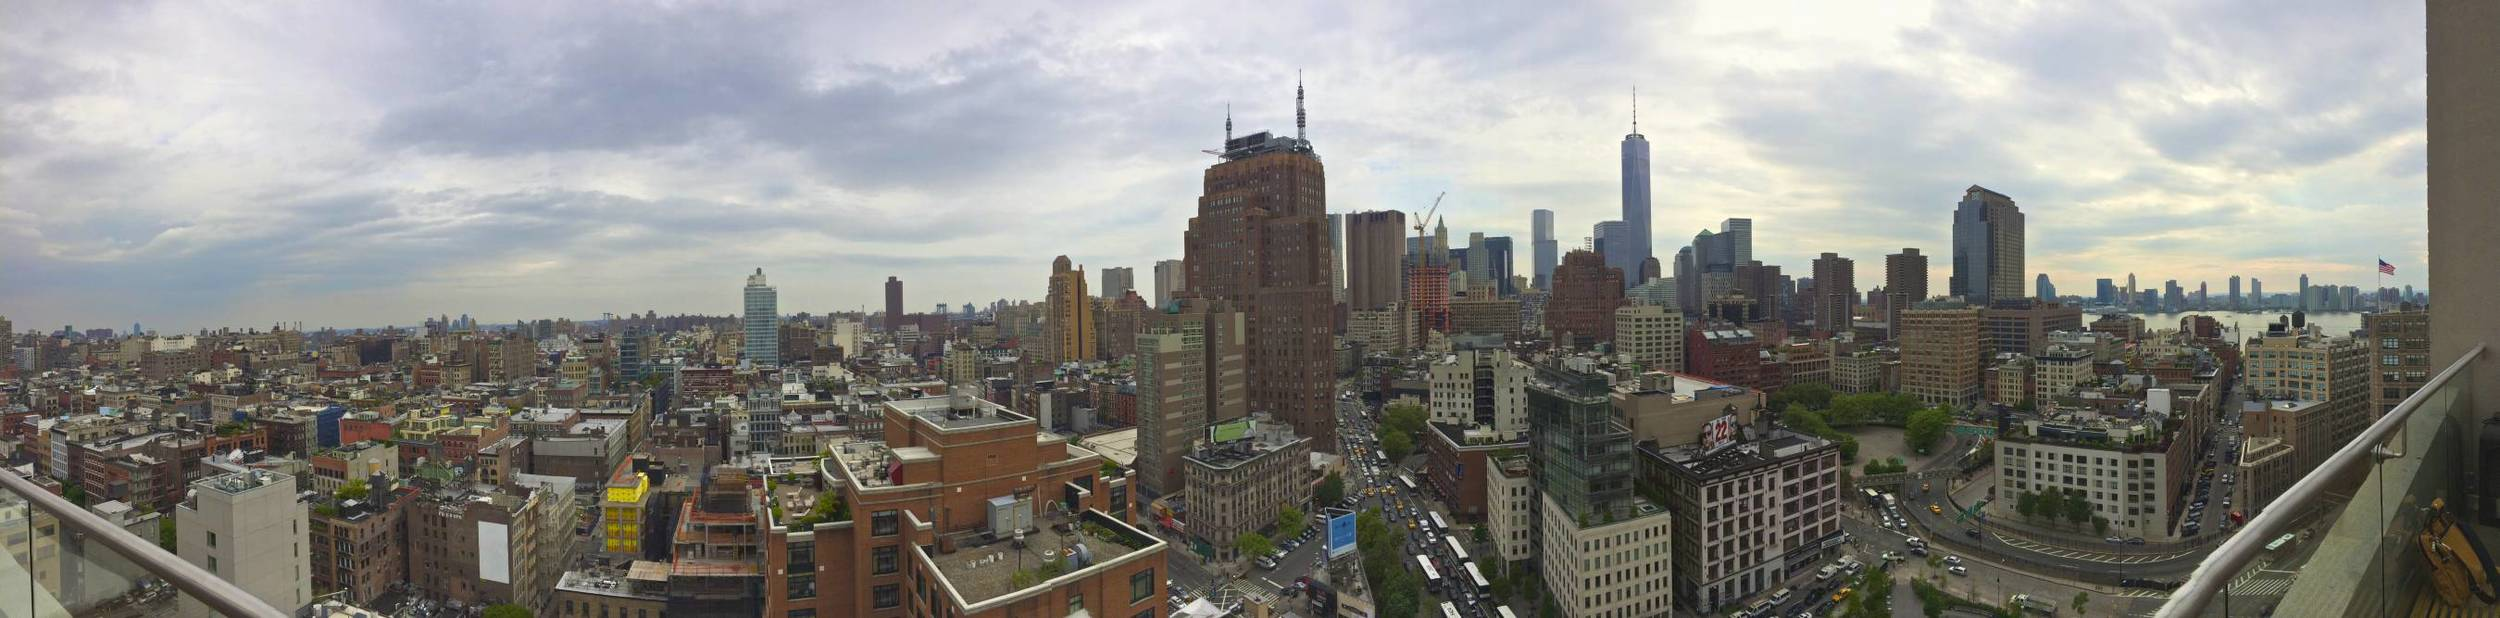 View from the St James.jpg